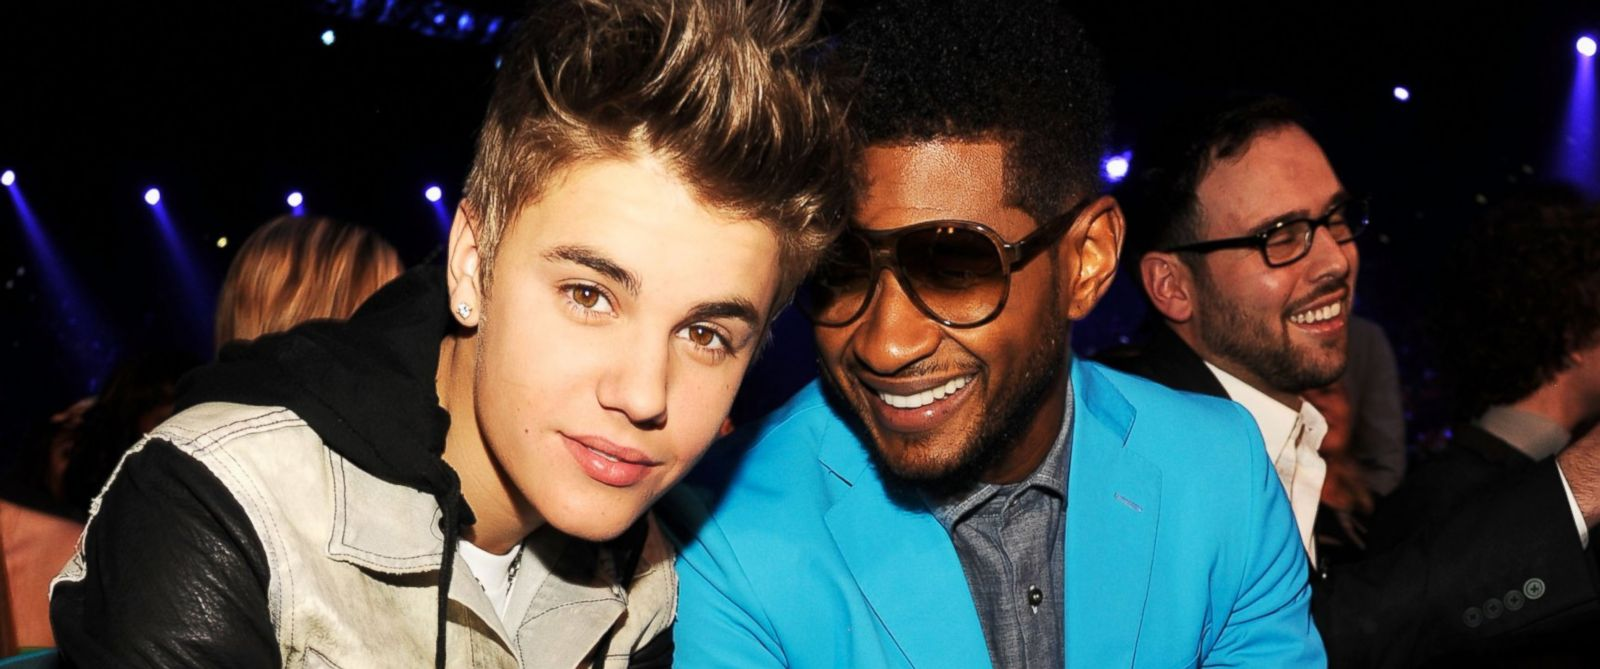 PHOTO: Singers Justin Bieber and Usher attend the 2012 Billboard Music Awards at the MGM Grand Garden Arena in this May 20, 2012, file photo in Las Vegas.